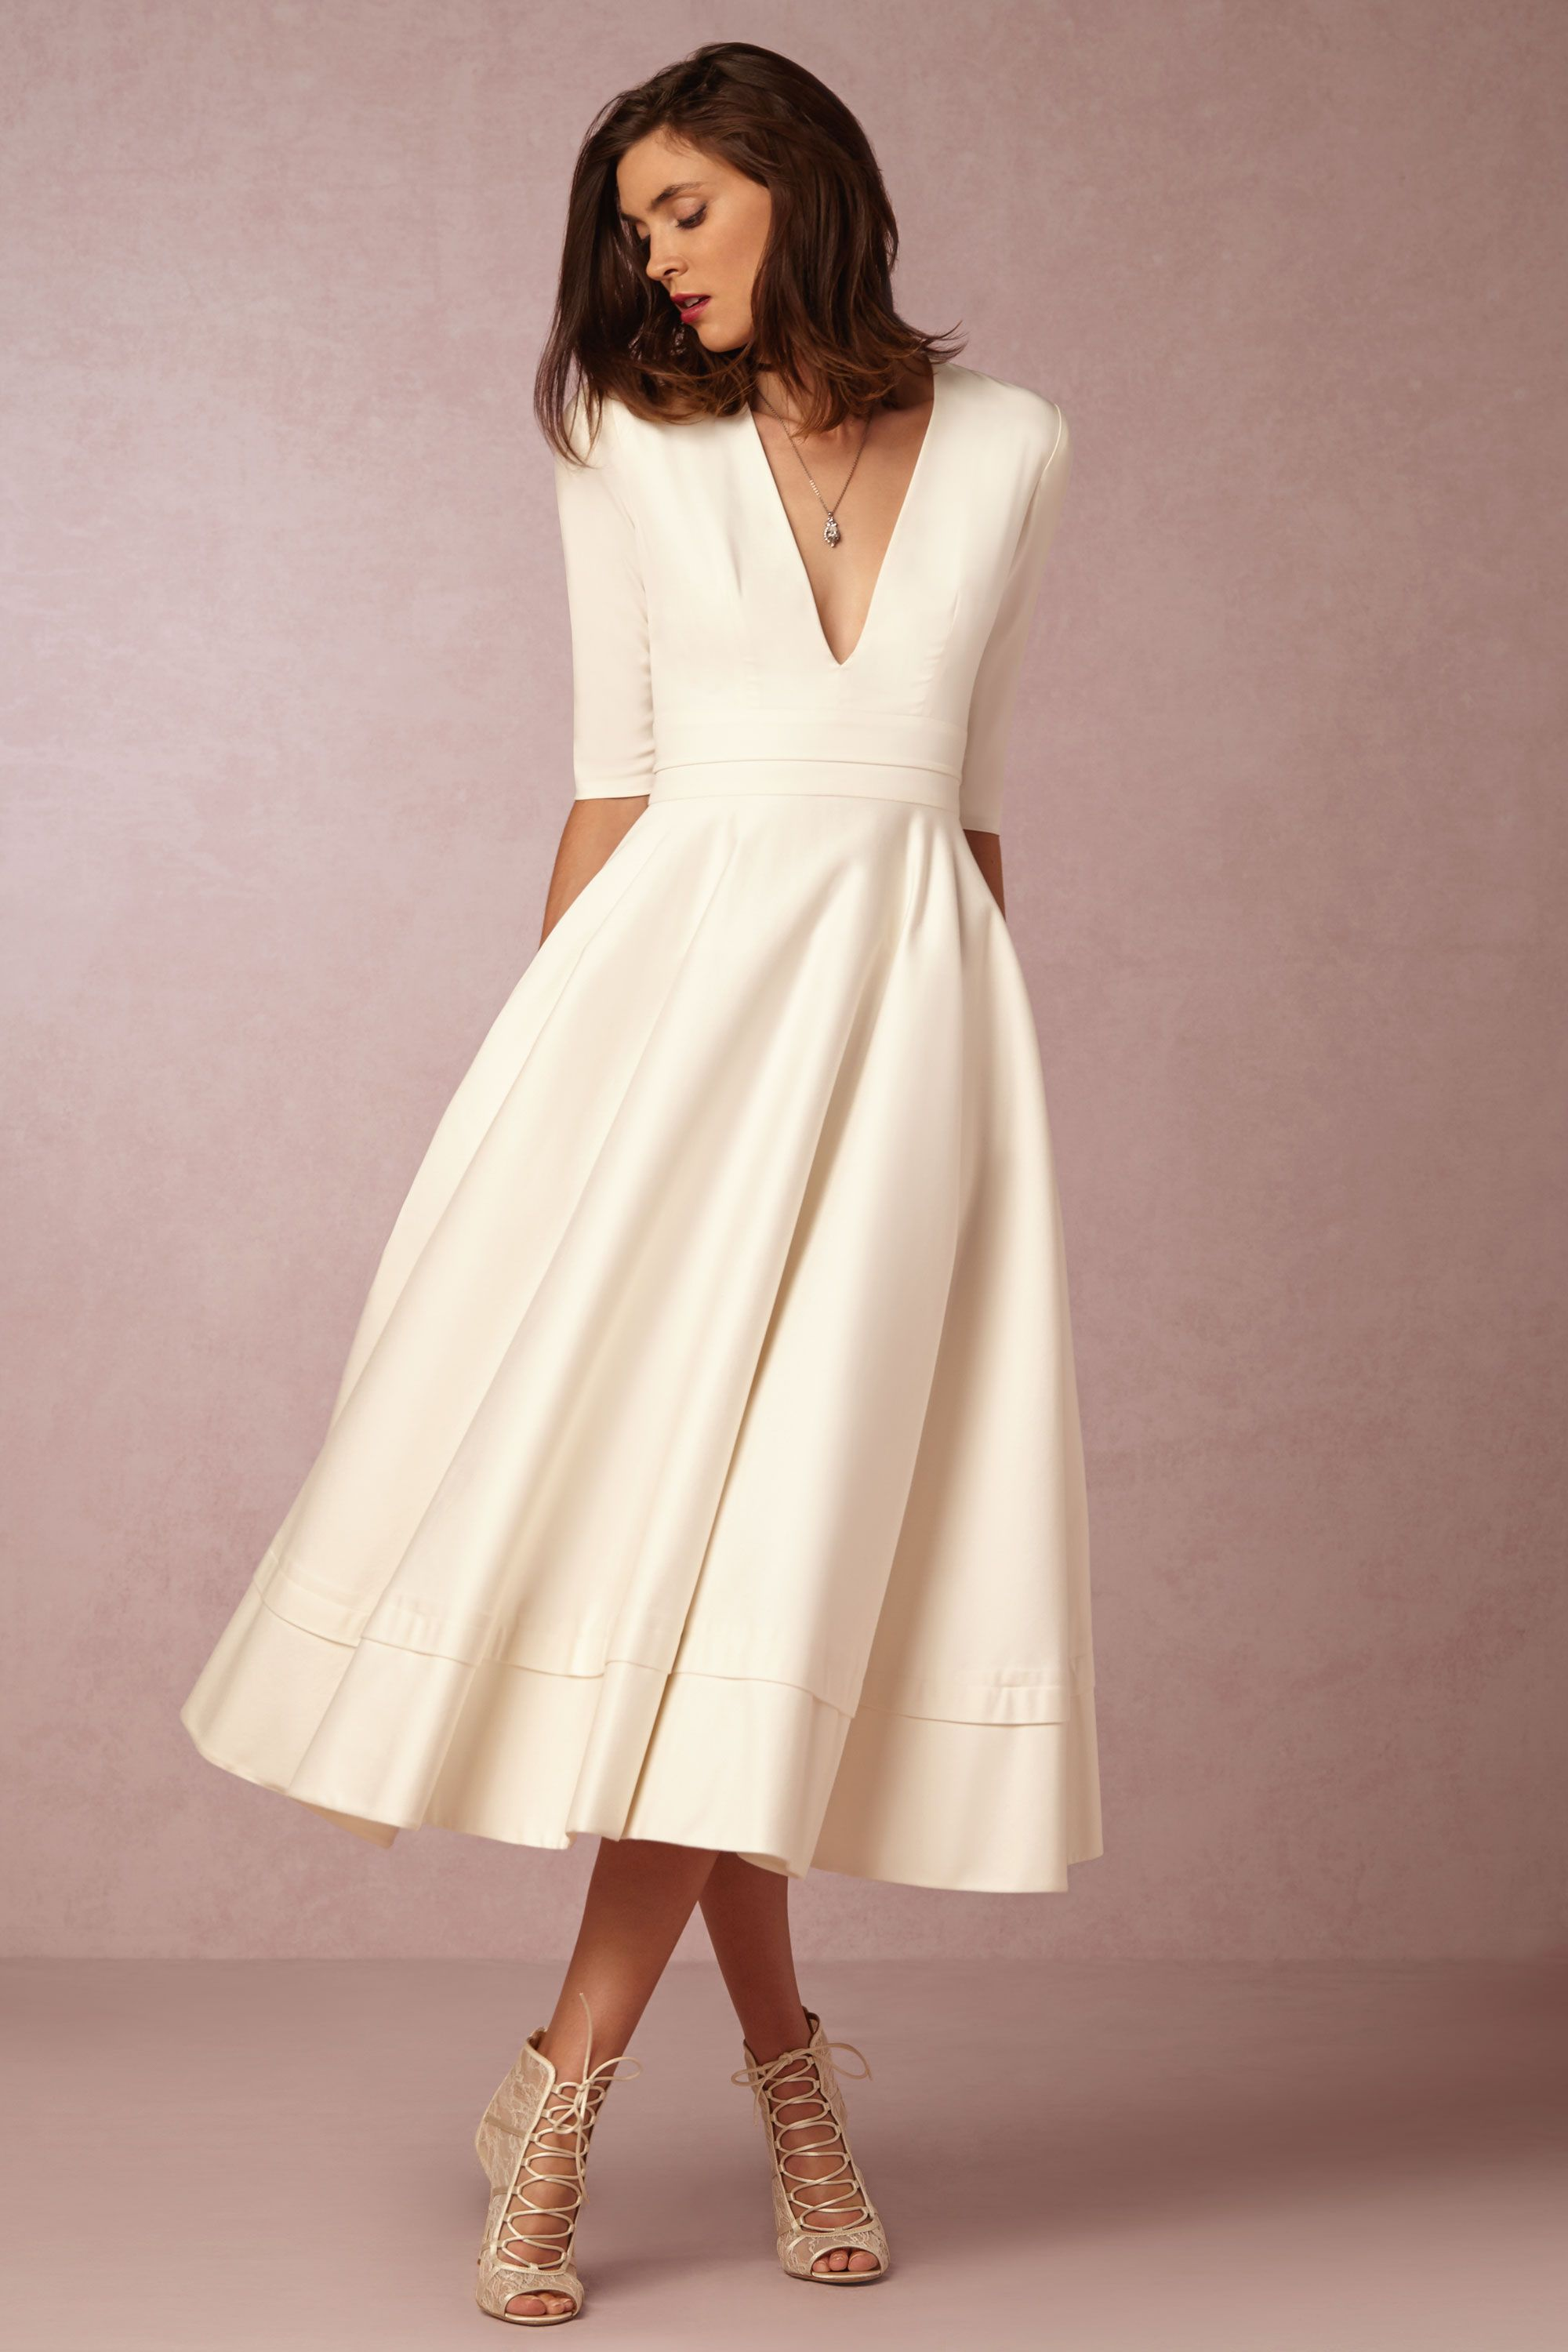 Not that I'm in the market for anything from BHLDN but this is beautiful...Prospere Gown from @BHLDN